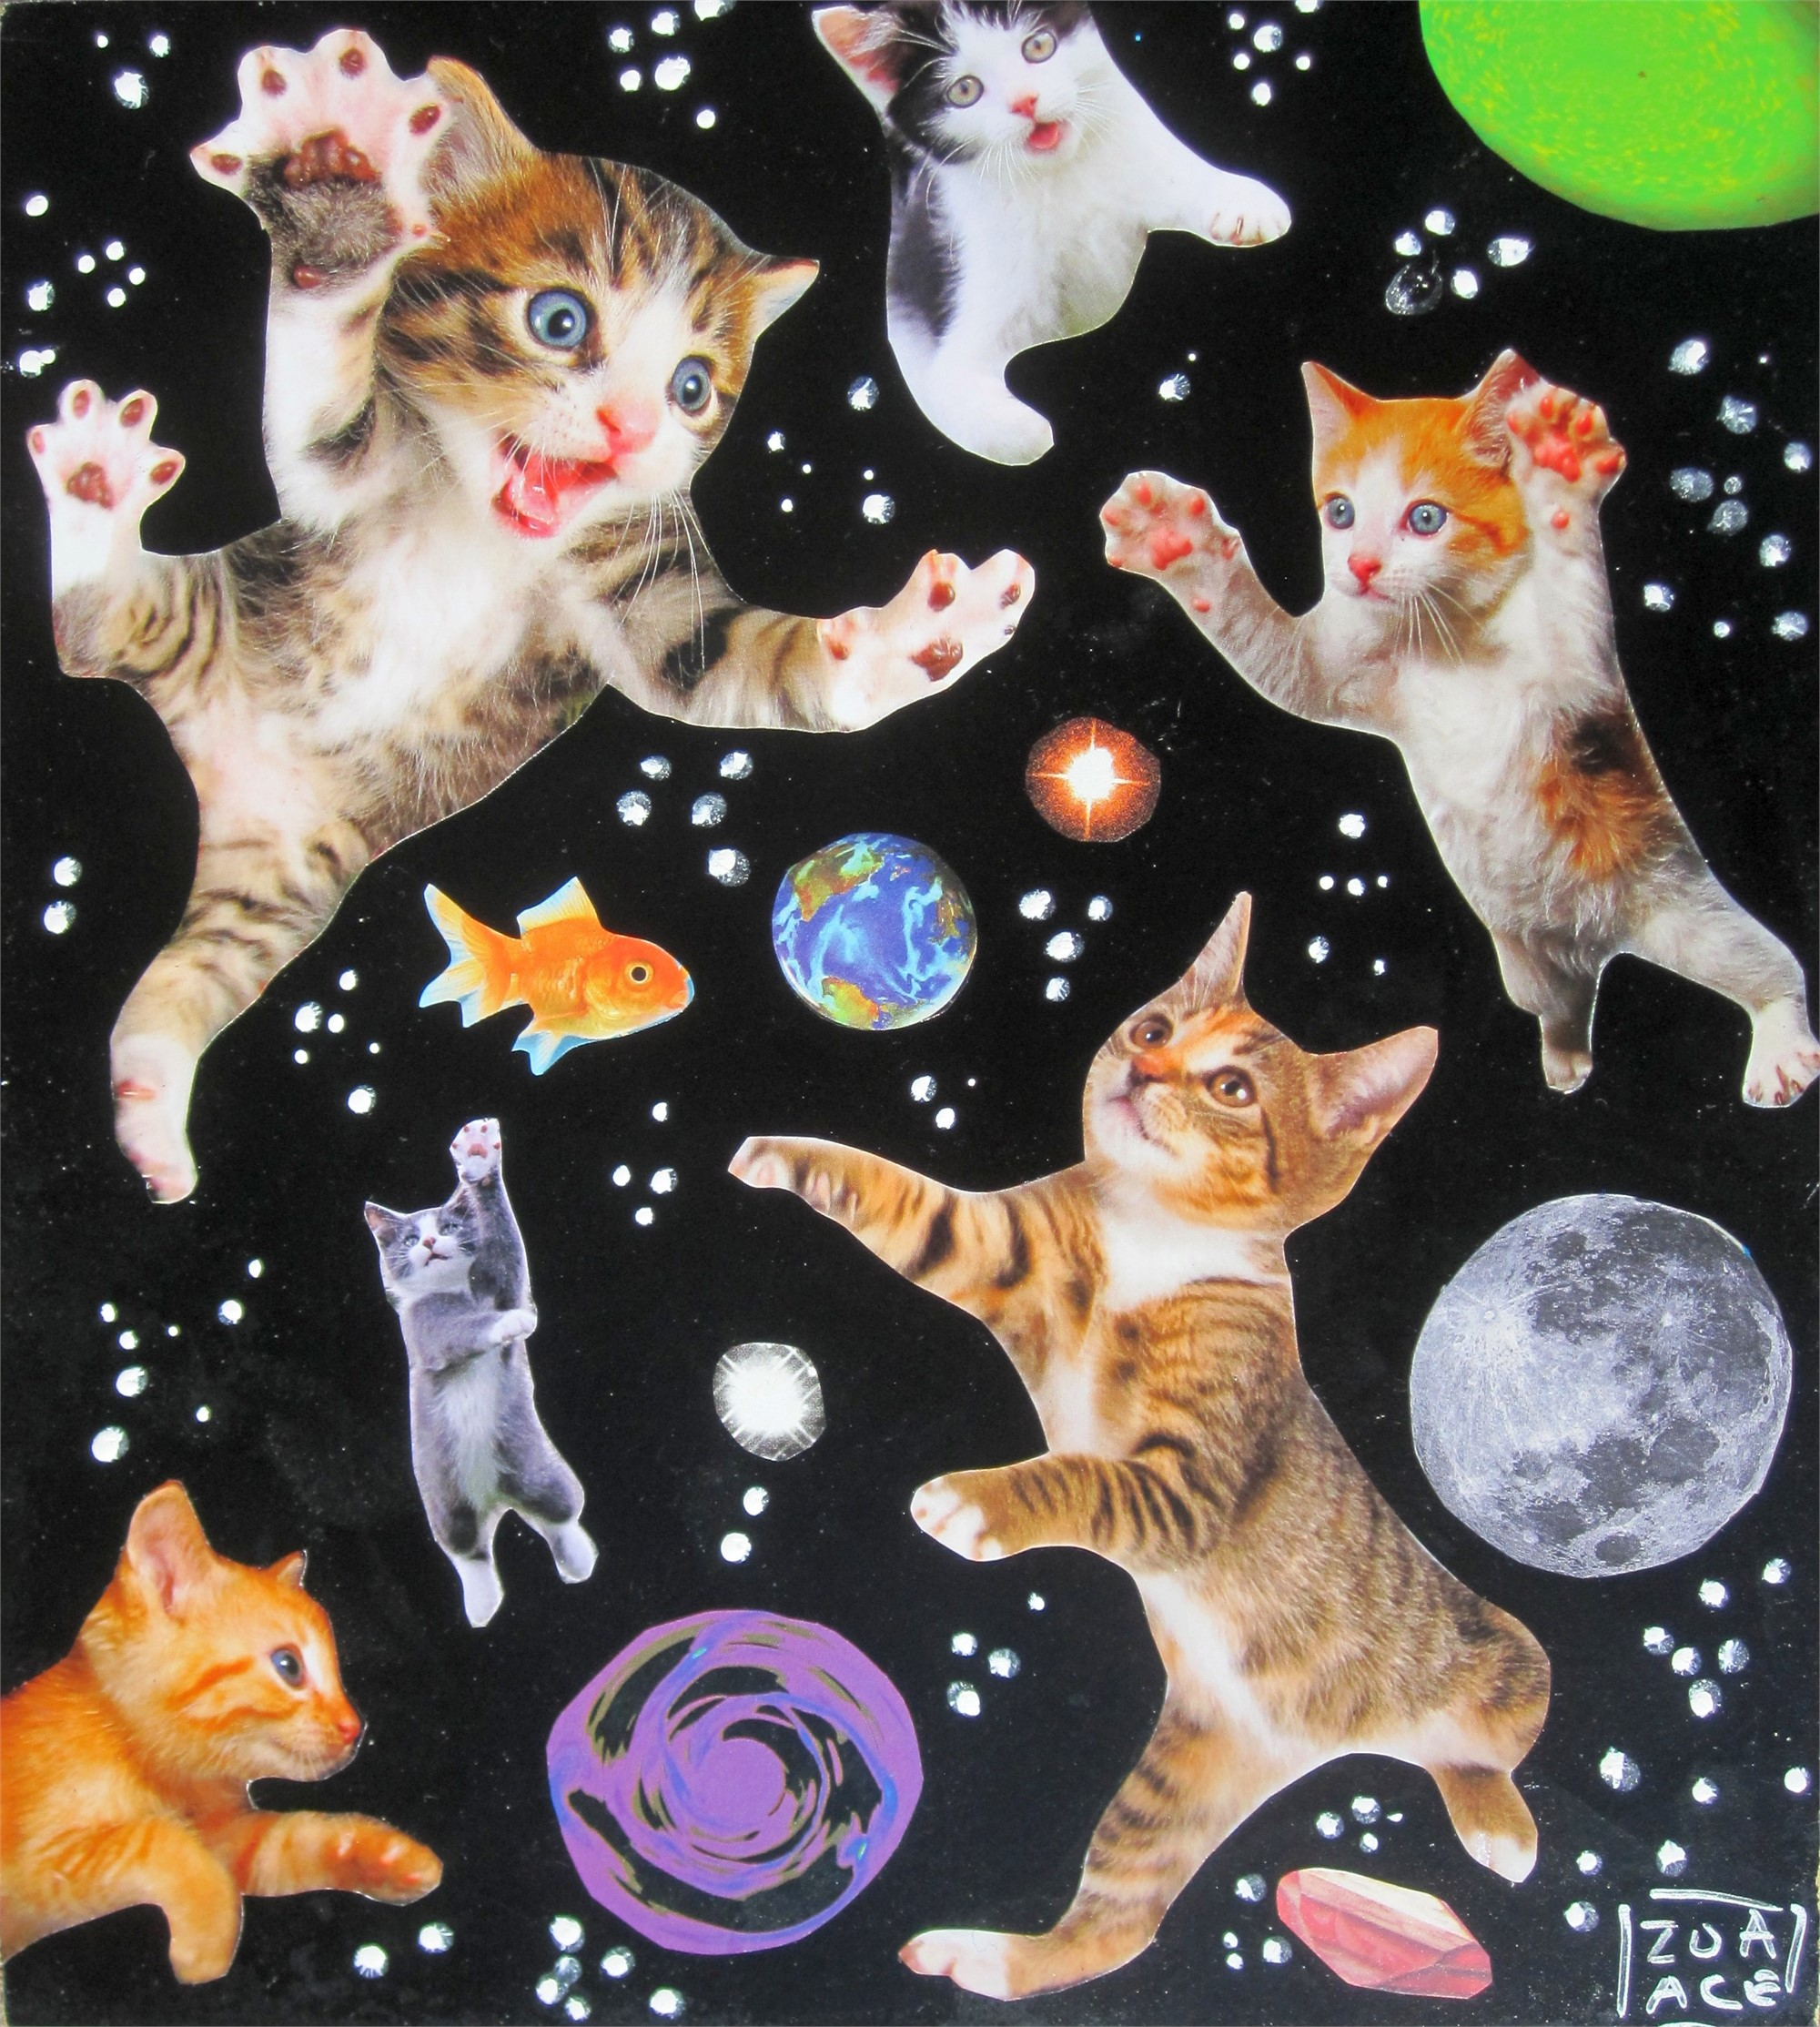 Space Cats by Zoa Ace